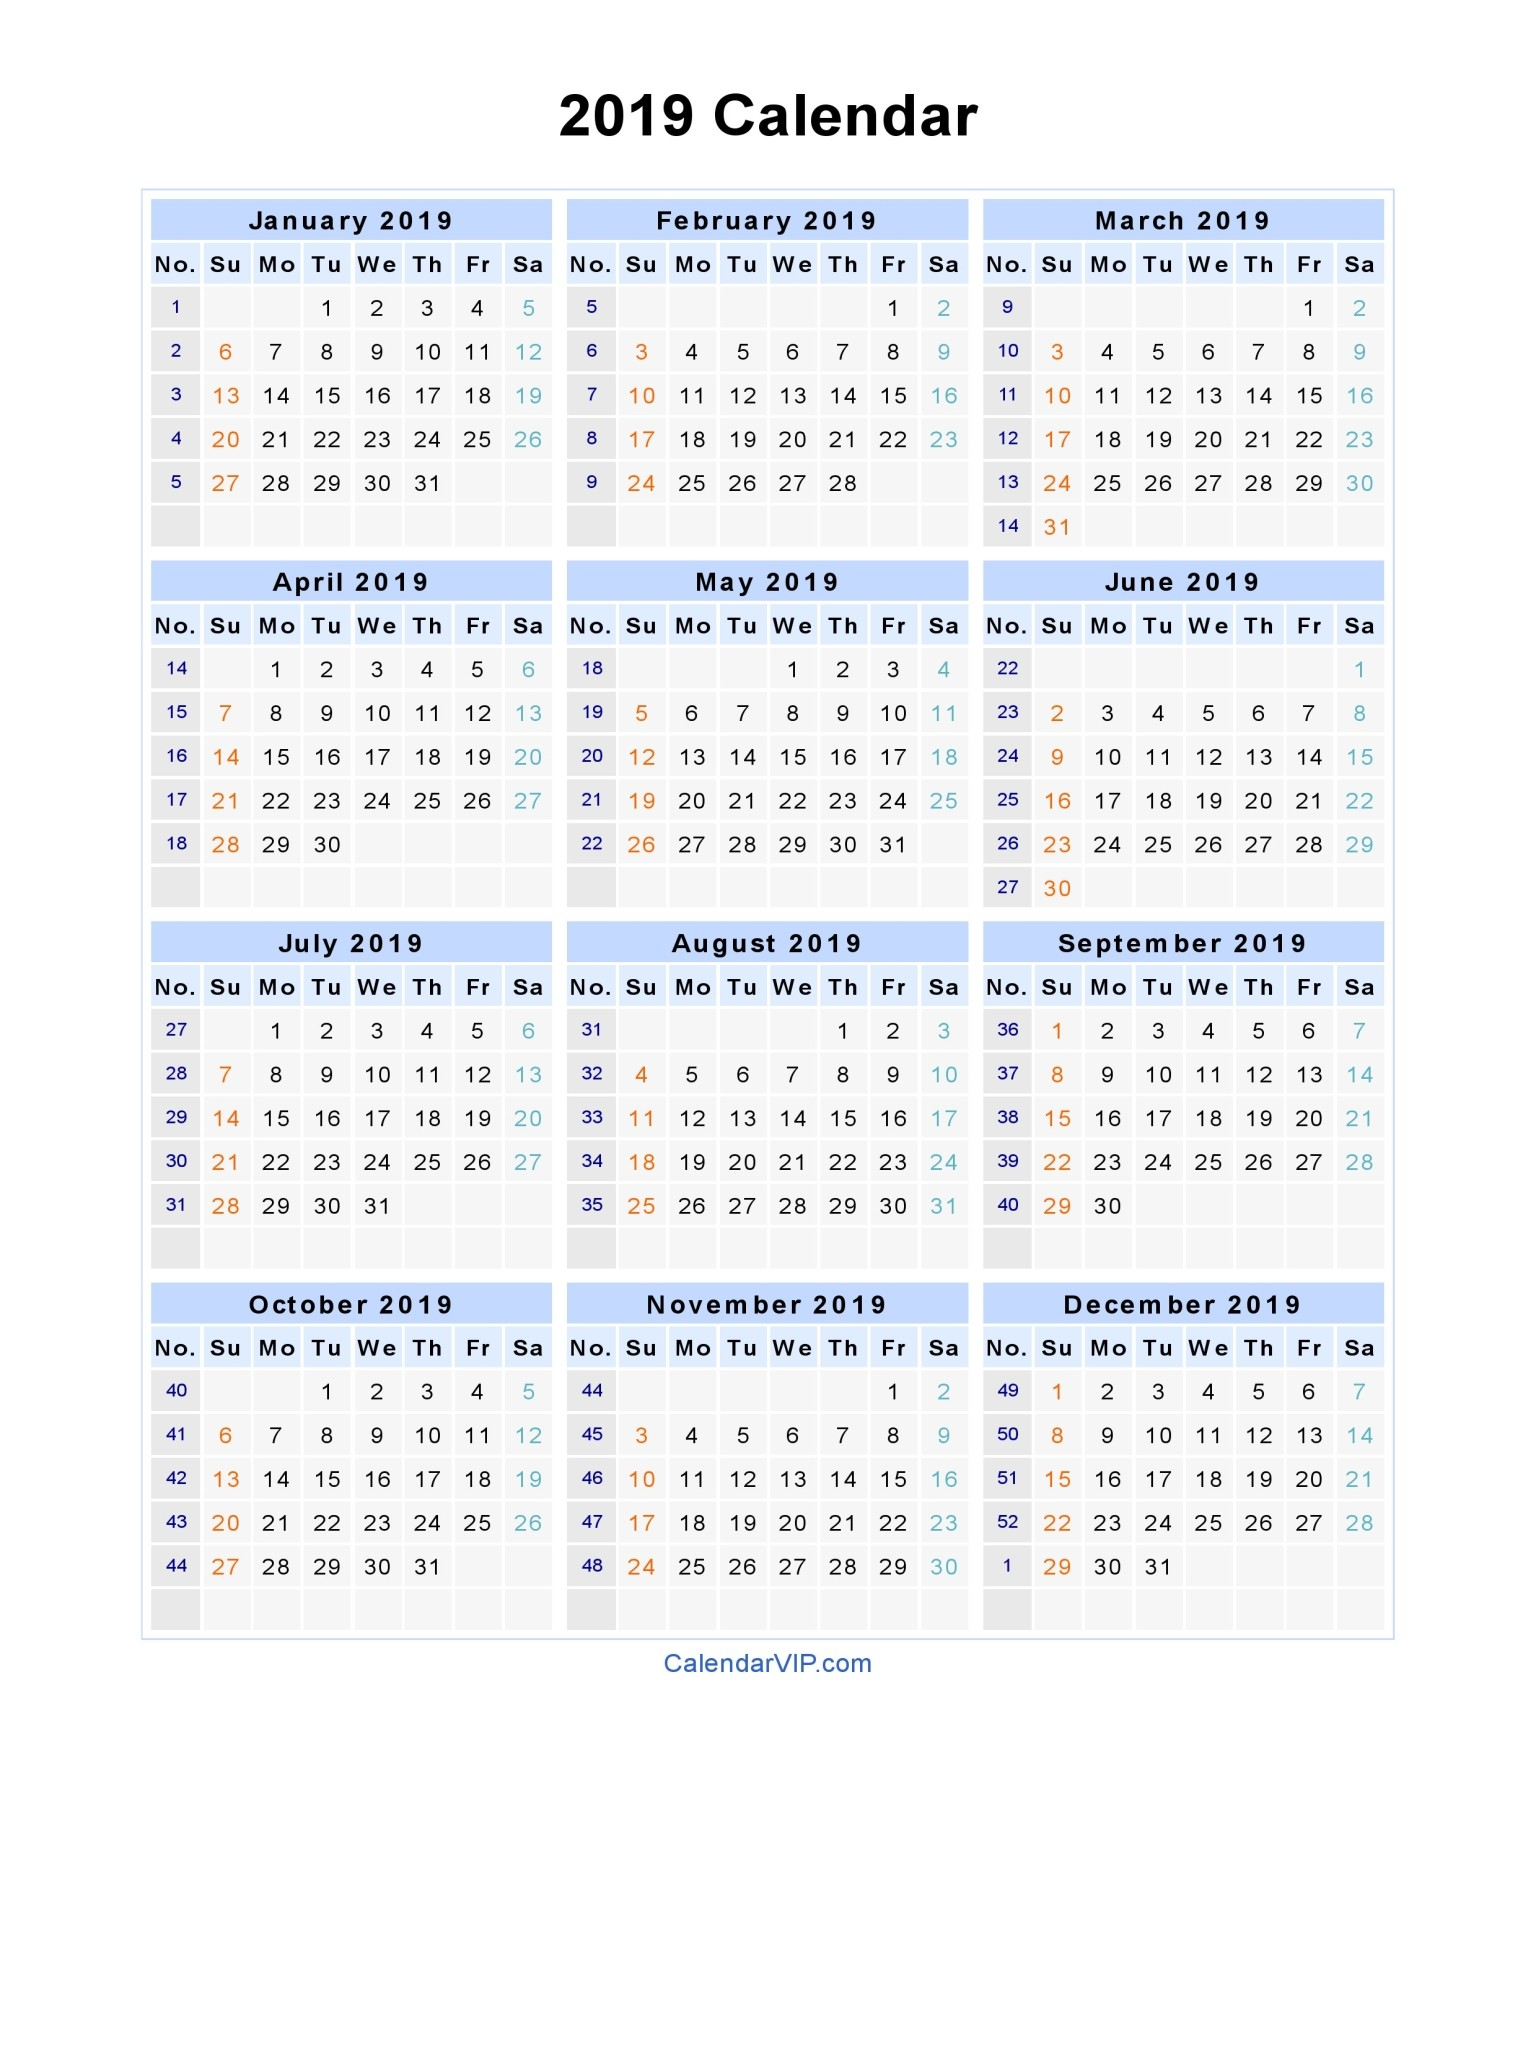 March 2019 Calendar Uk Printable Más Actual 2019 Calendar Template Excel Uk Of March 2019 Calendar Uk Printable Más Recientemente Liberado June 2019 Calendar Word Lara Expolicenciaslatam